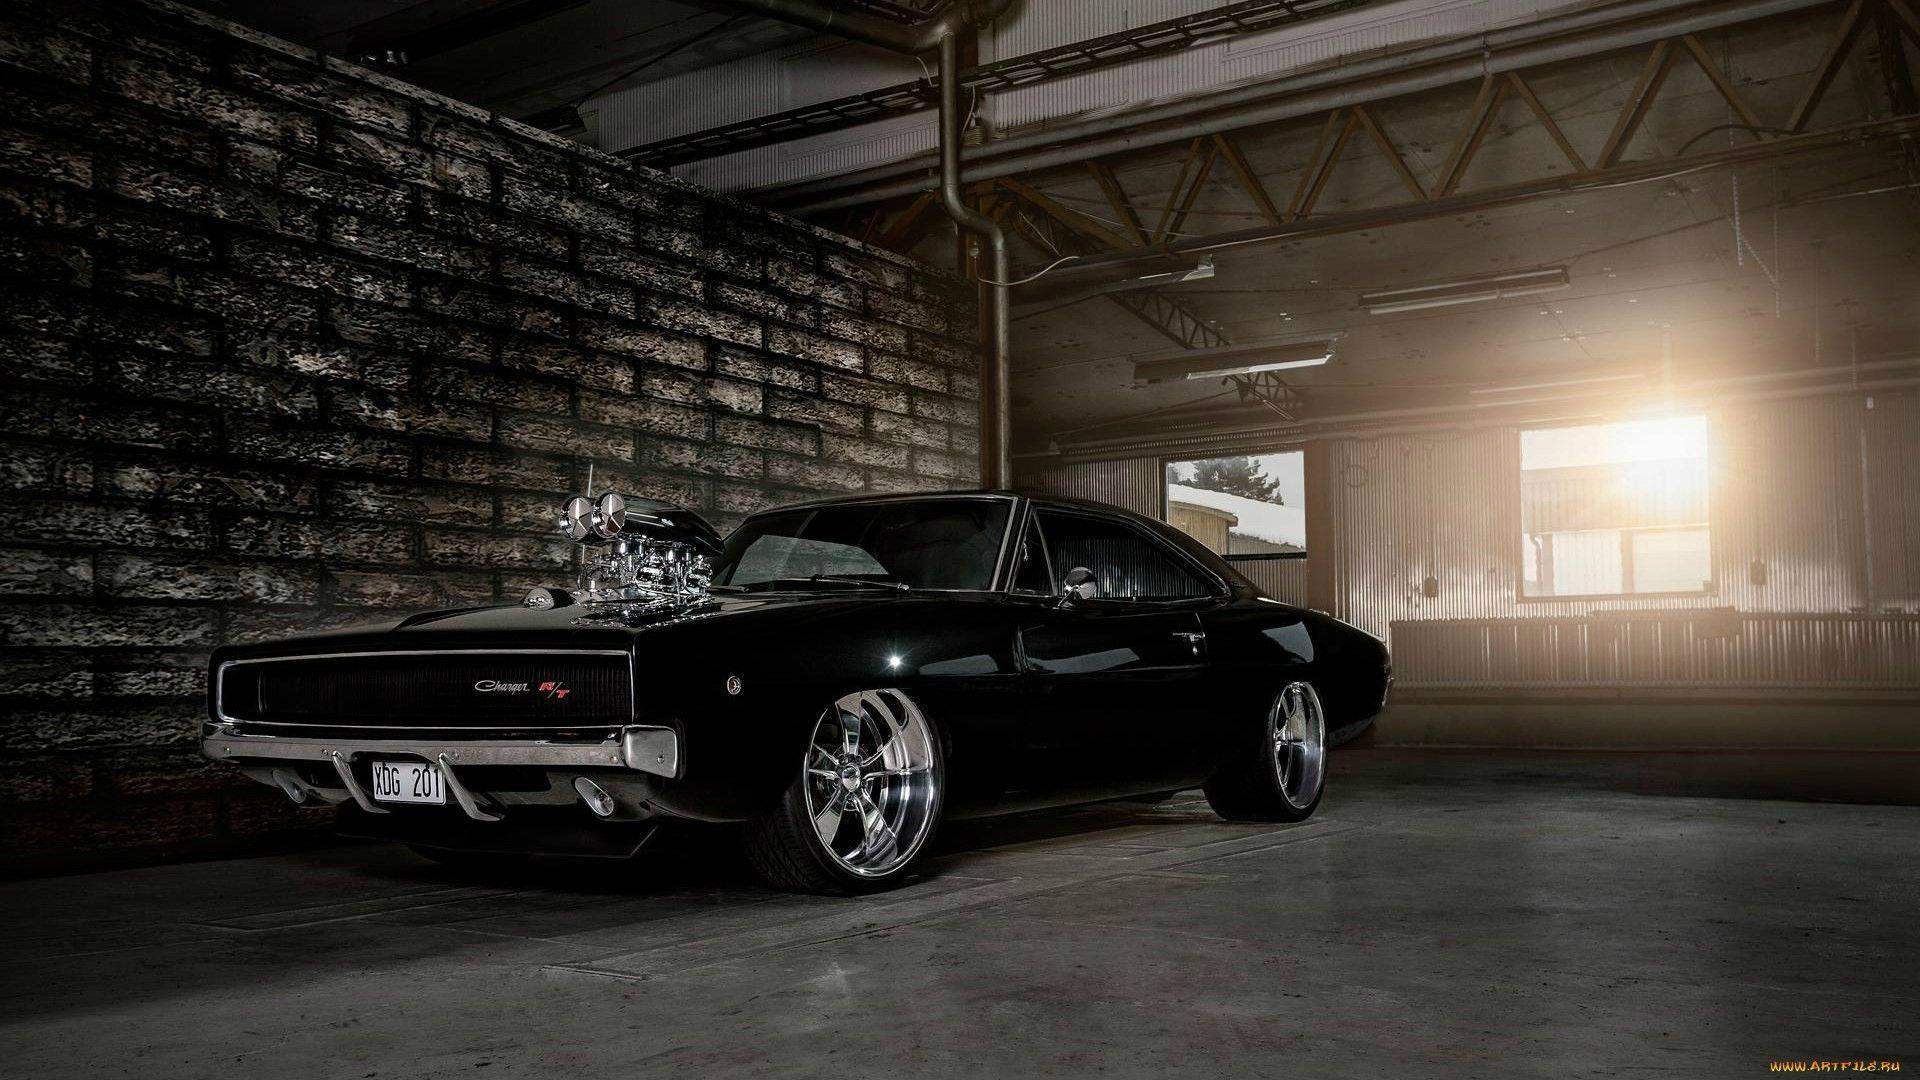 1970 Dodge Charger Wallpapers - Wallpaper Cave